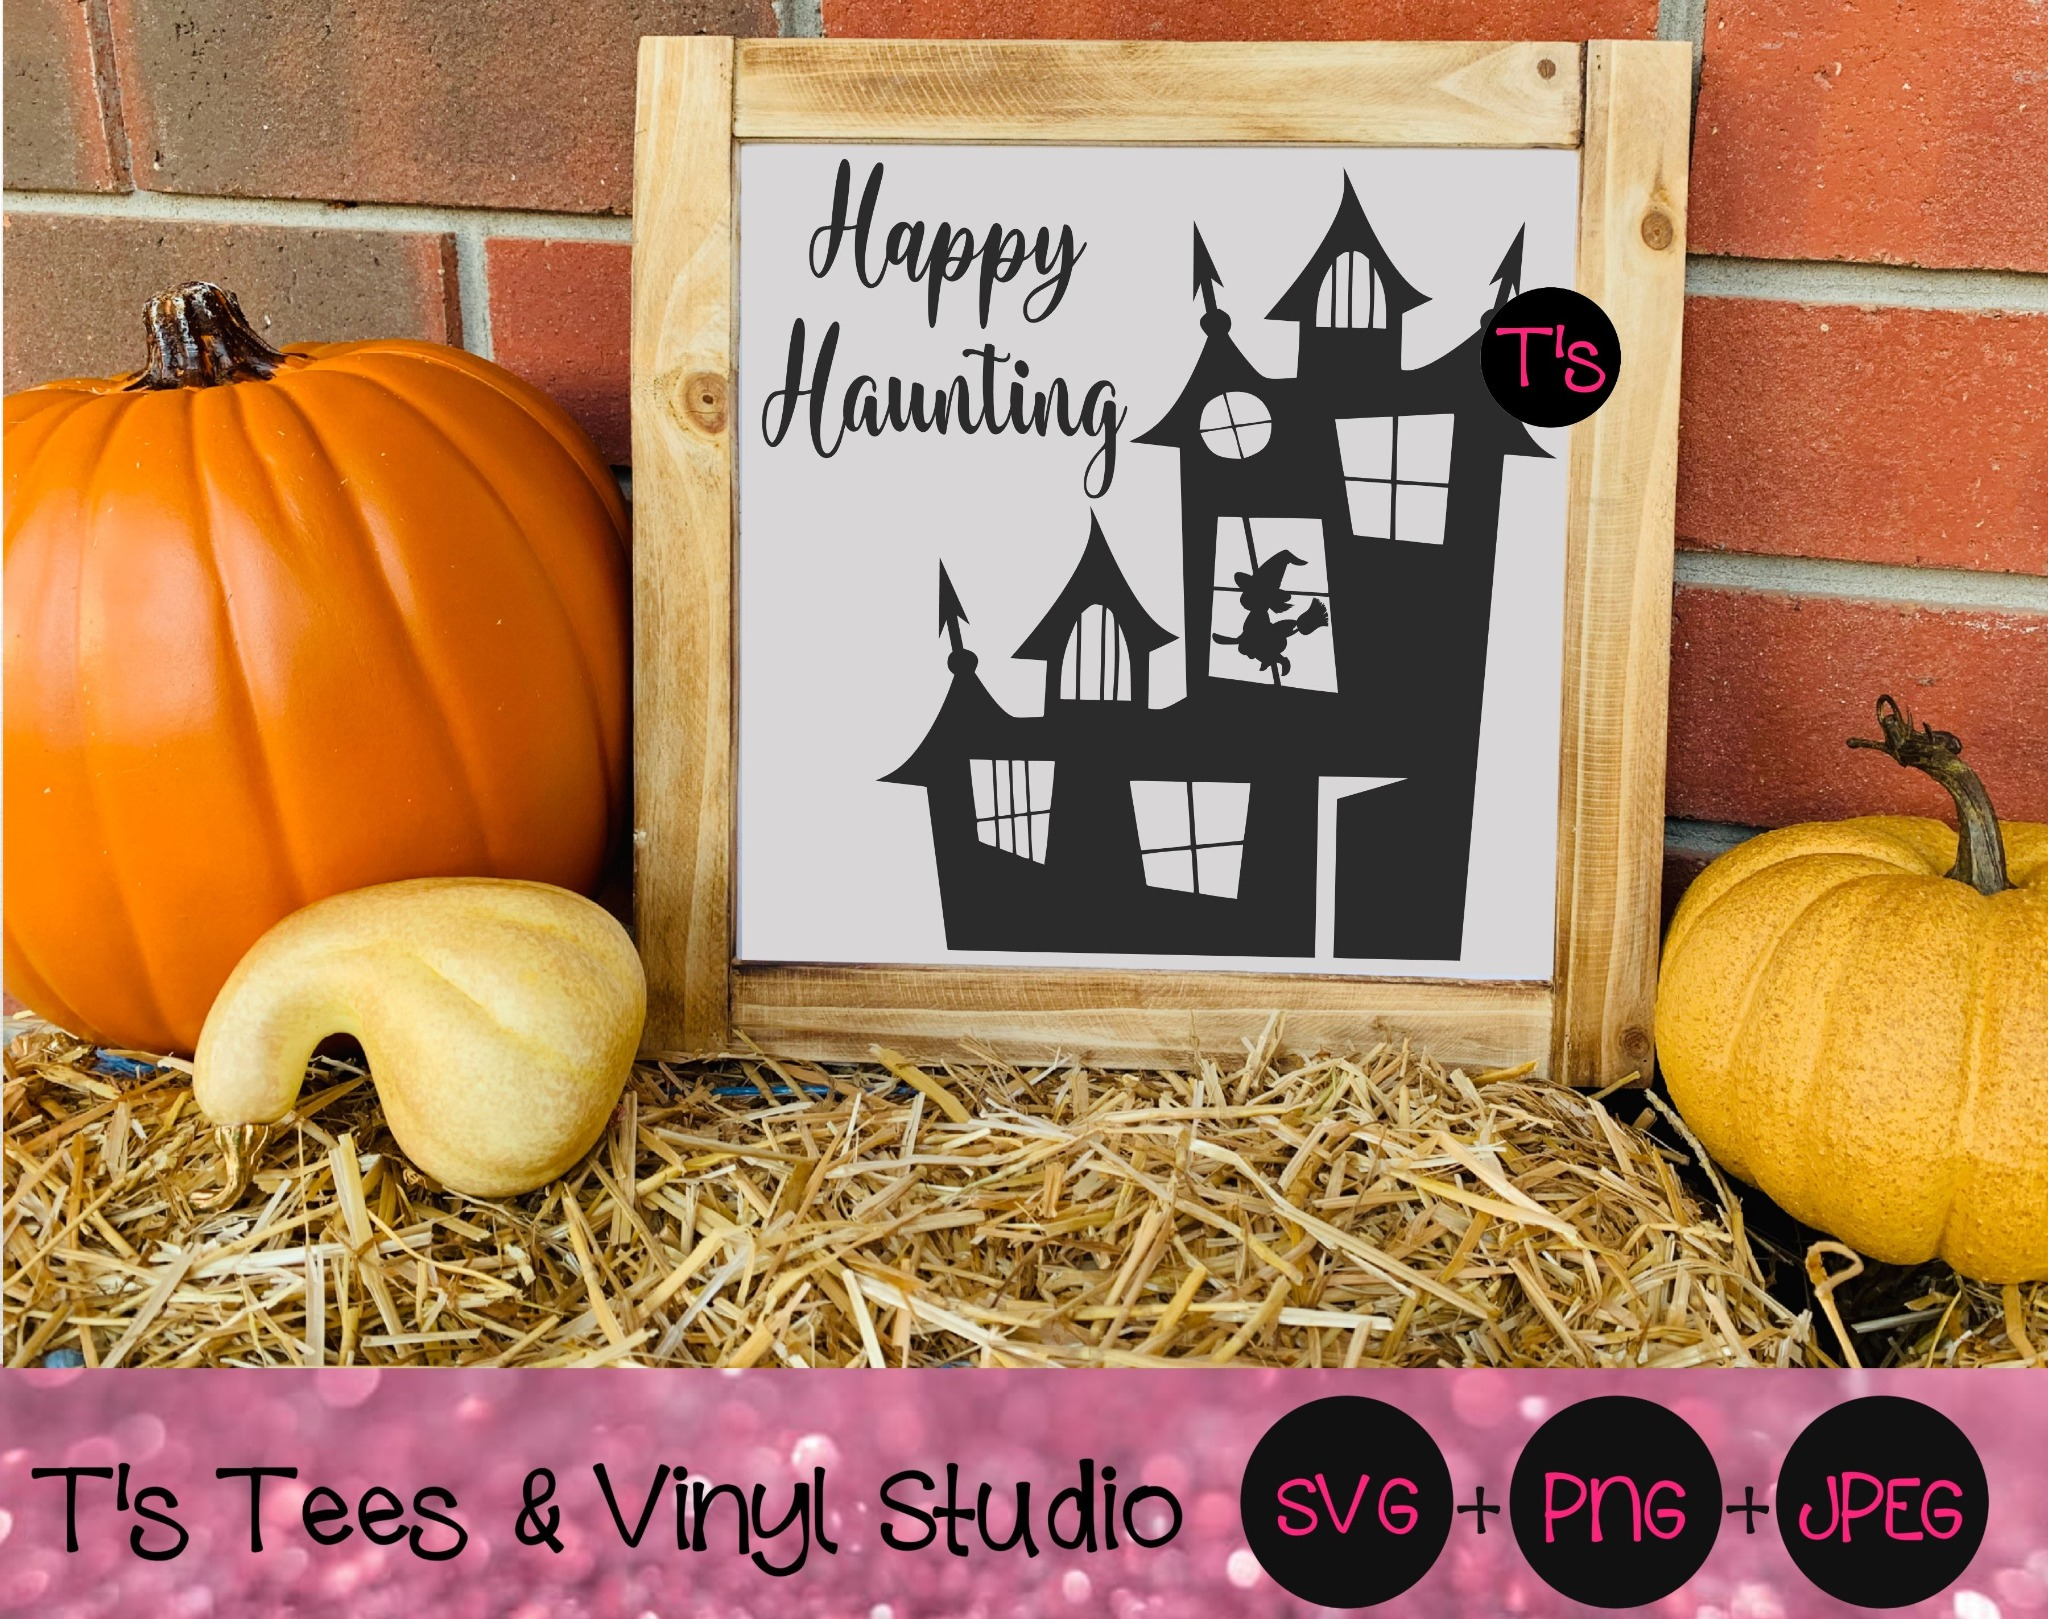 Happy Haunting Svg, Happy Halloween Svg, Halloween Svg, Witch Svg, Spooky Svg, Haunted House Svg